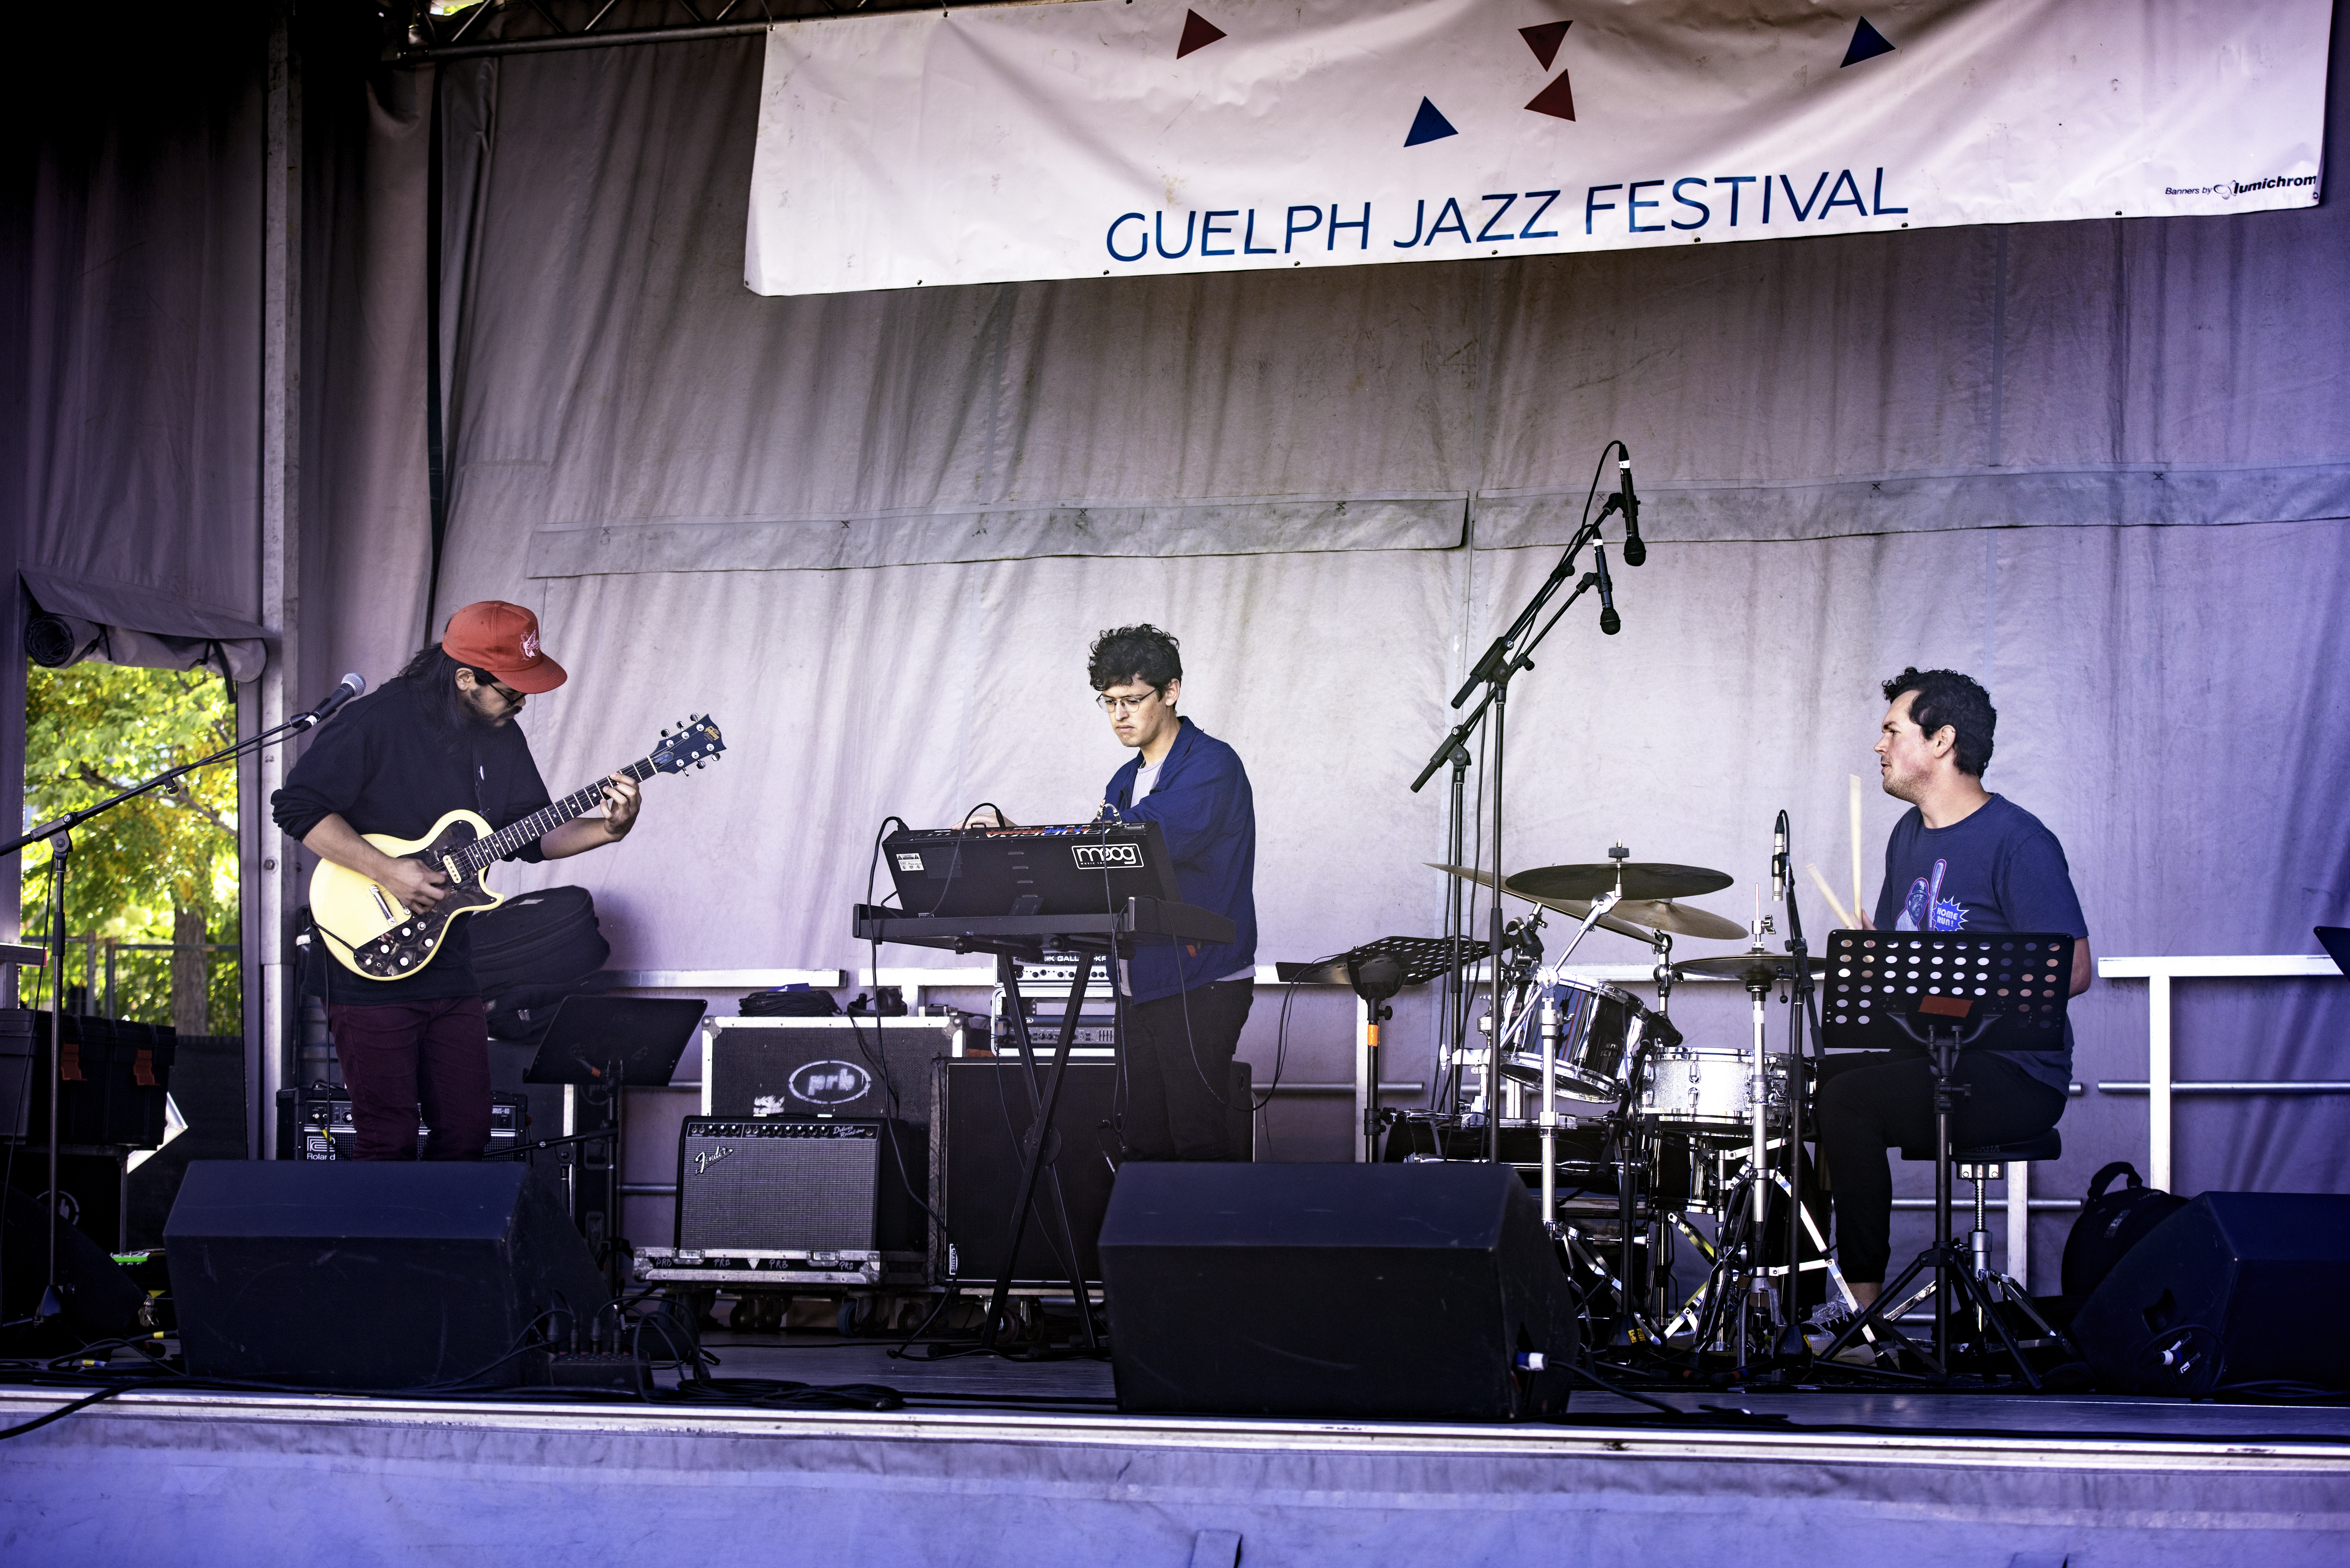 Matthew Fong, Chris Pruden and Mack Longpre with Future Machines at the Guelph Jazz Festival (2019)